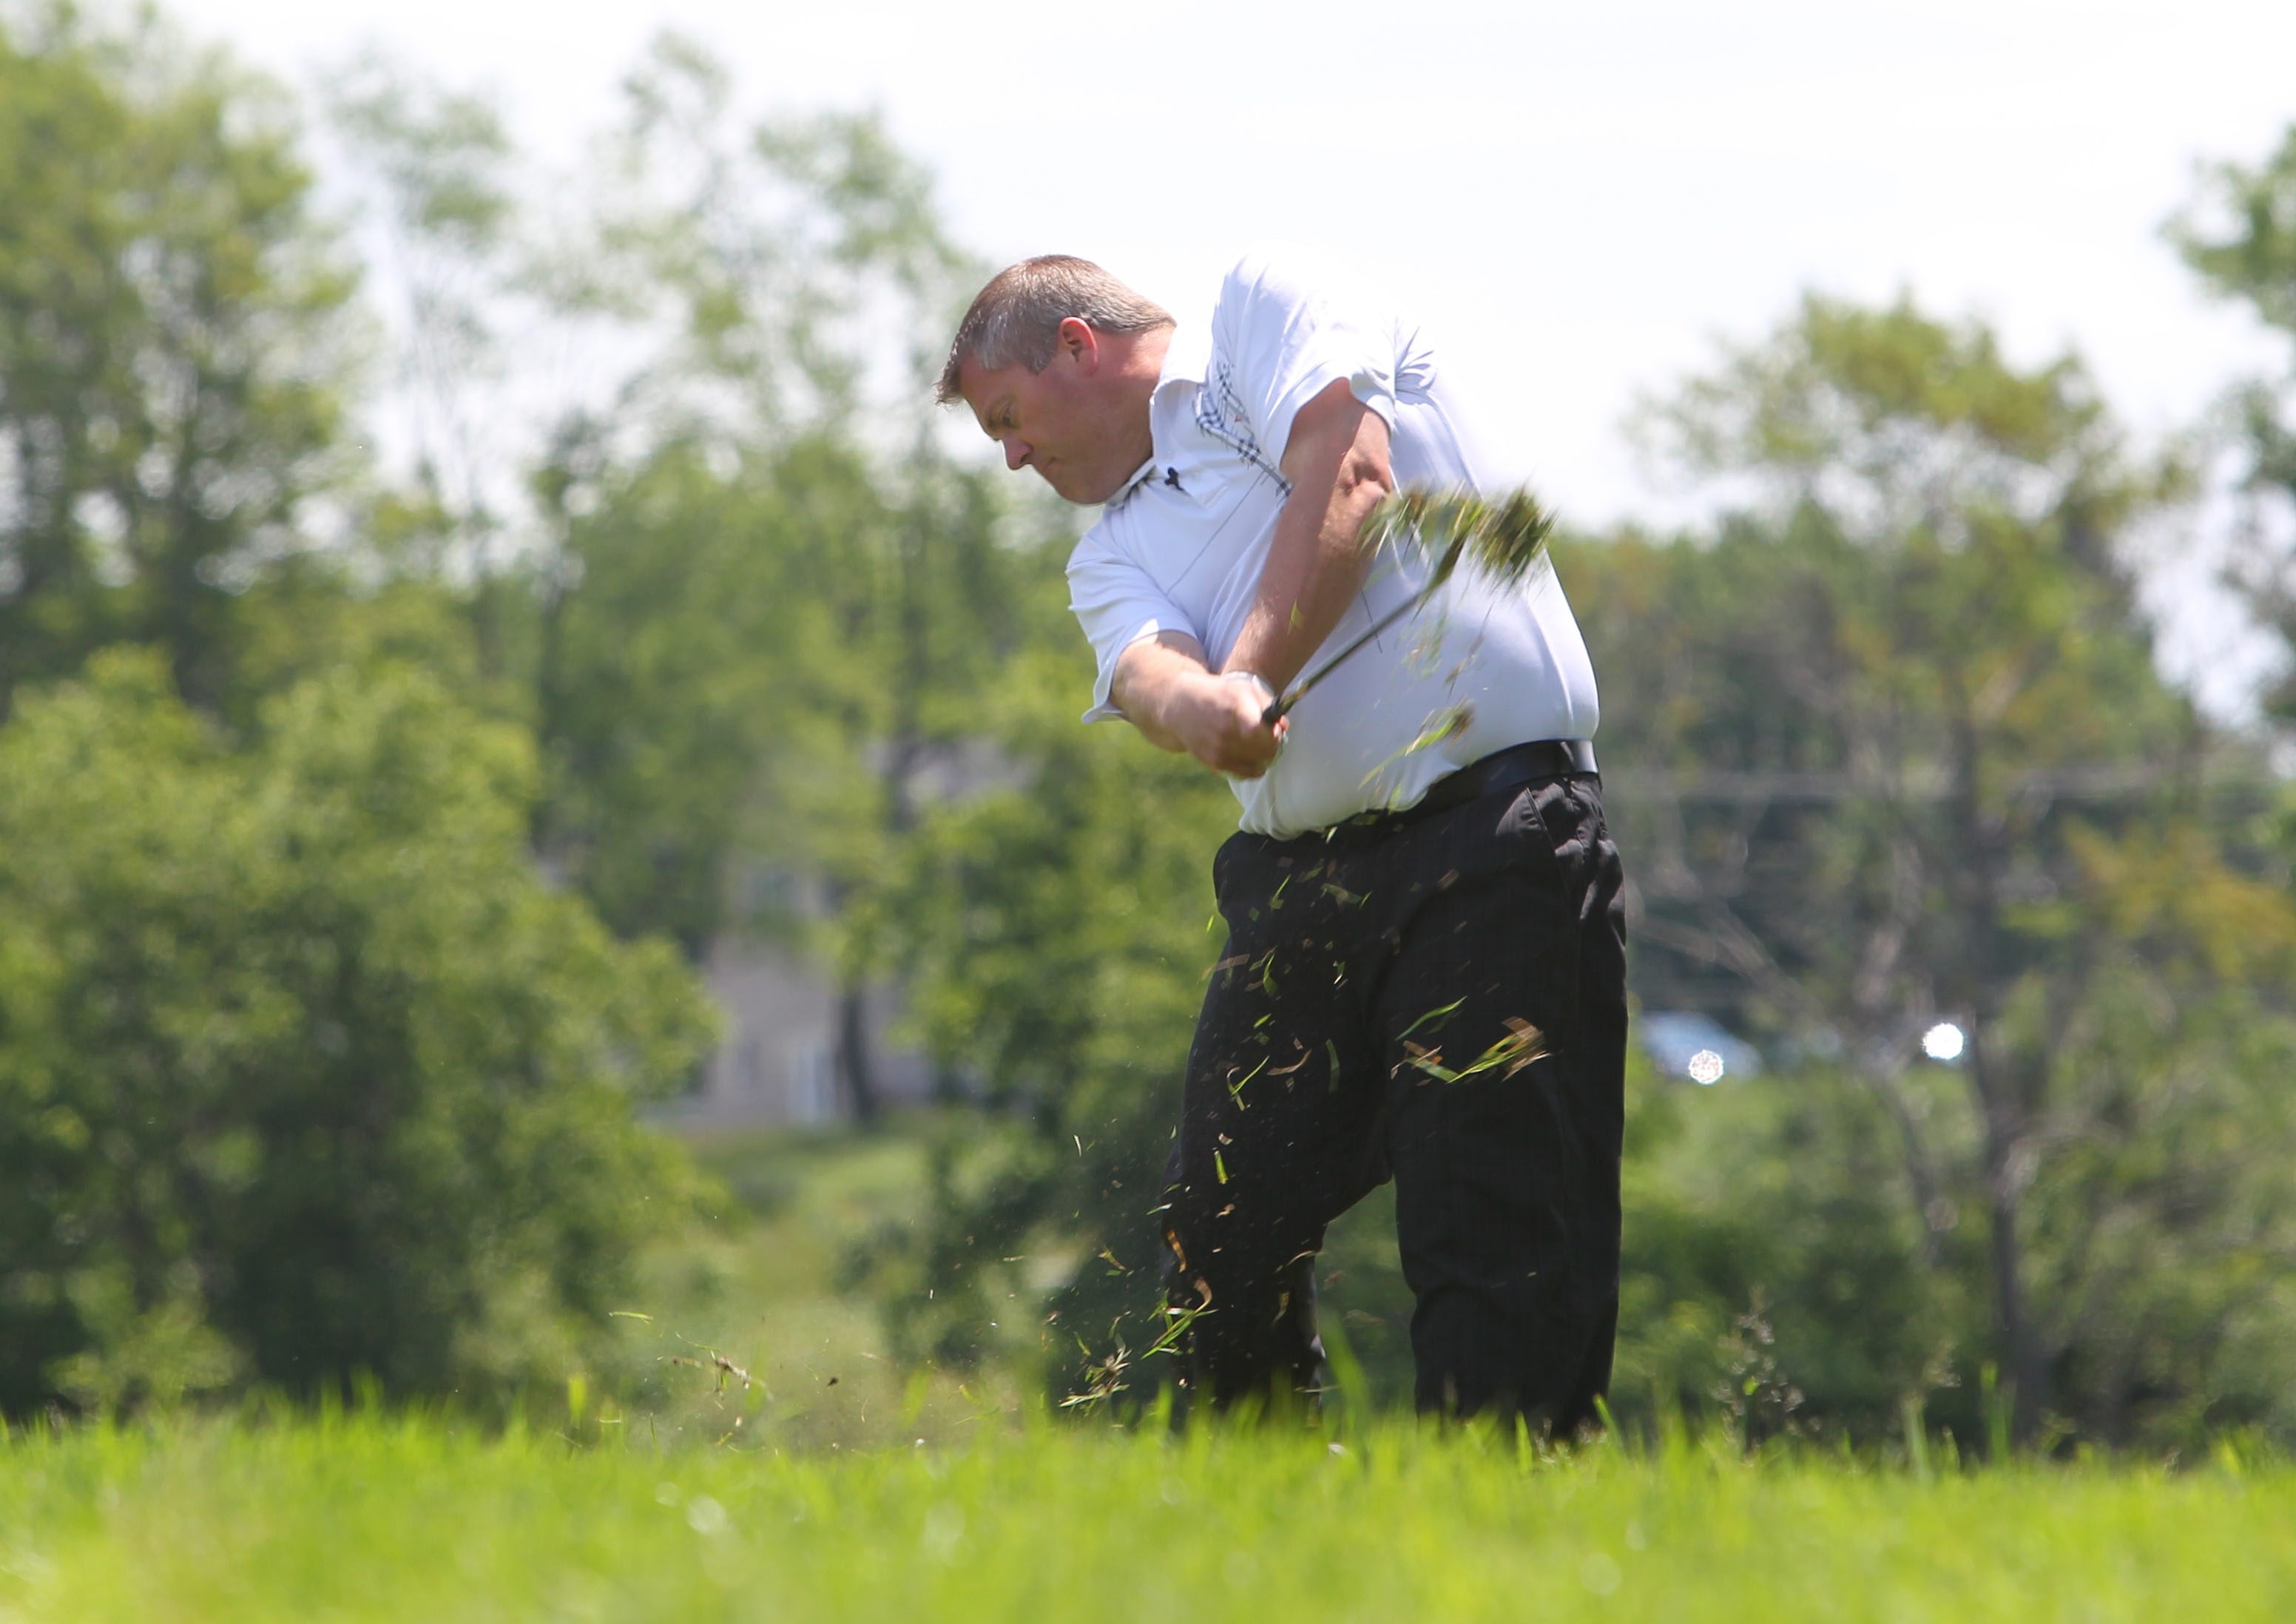 Harvest Hill's Scott Arnold demonstrates how to hit from the high rough at the club in Orchard Park on Tuesday.